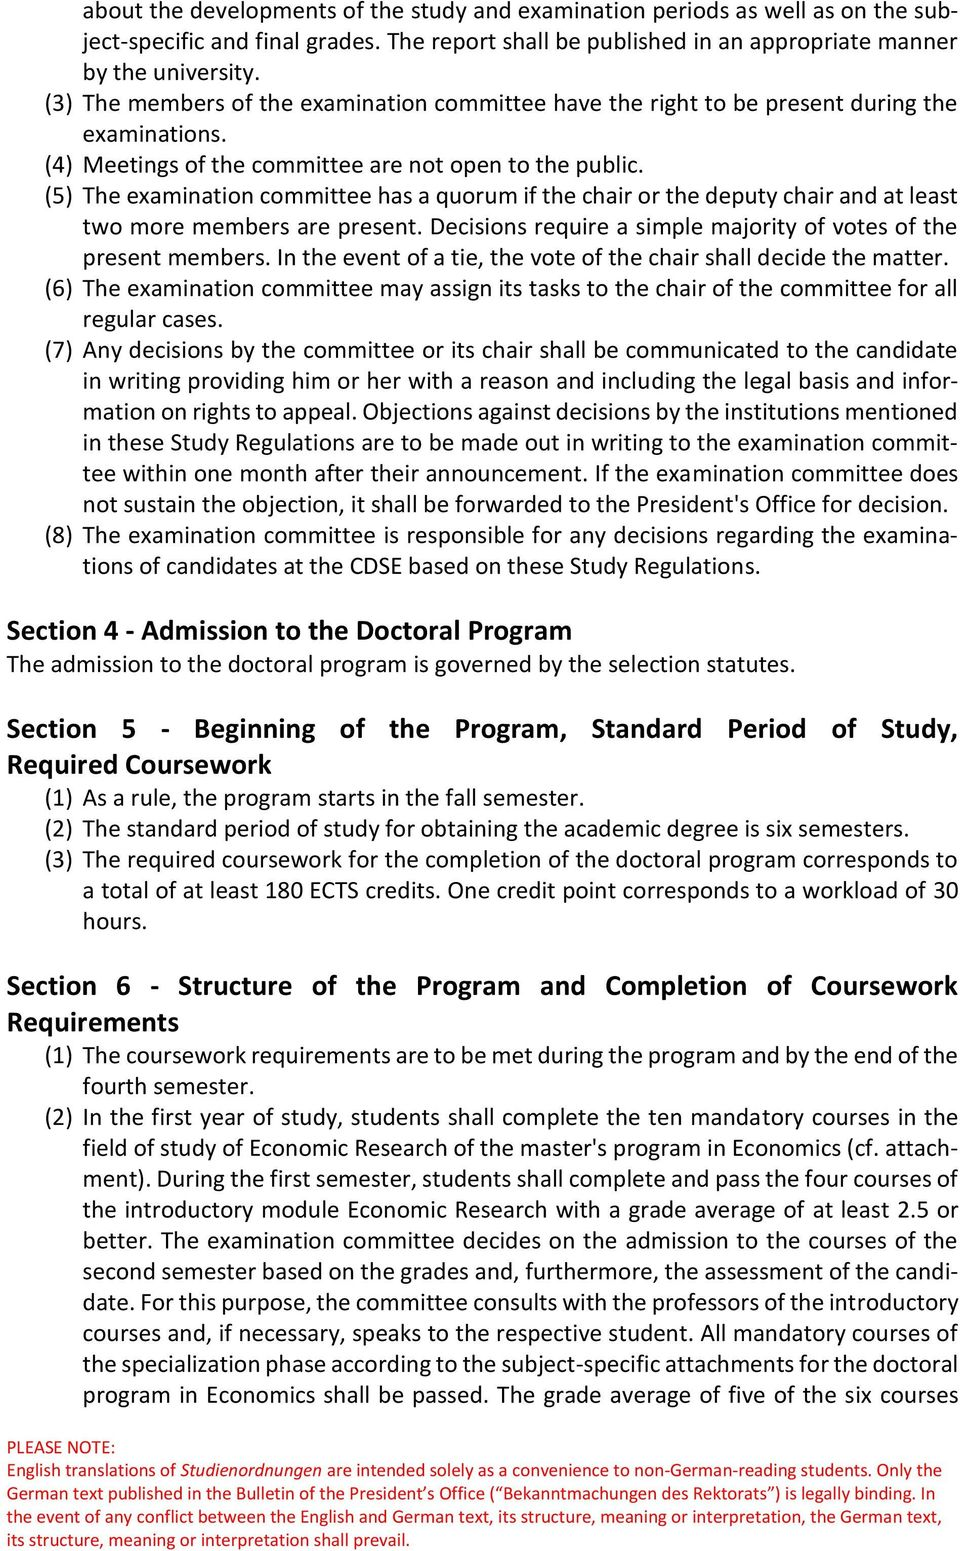 Study Regulations for the Doctoral Program in Economics at